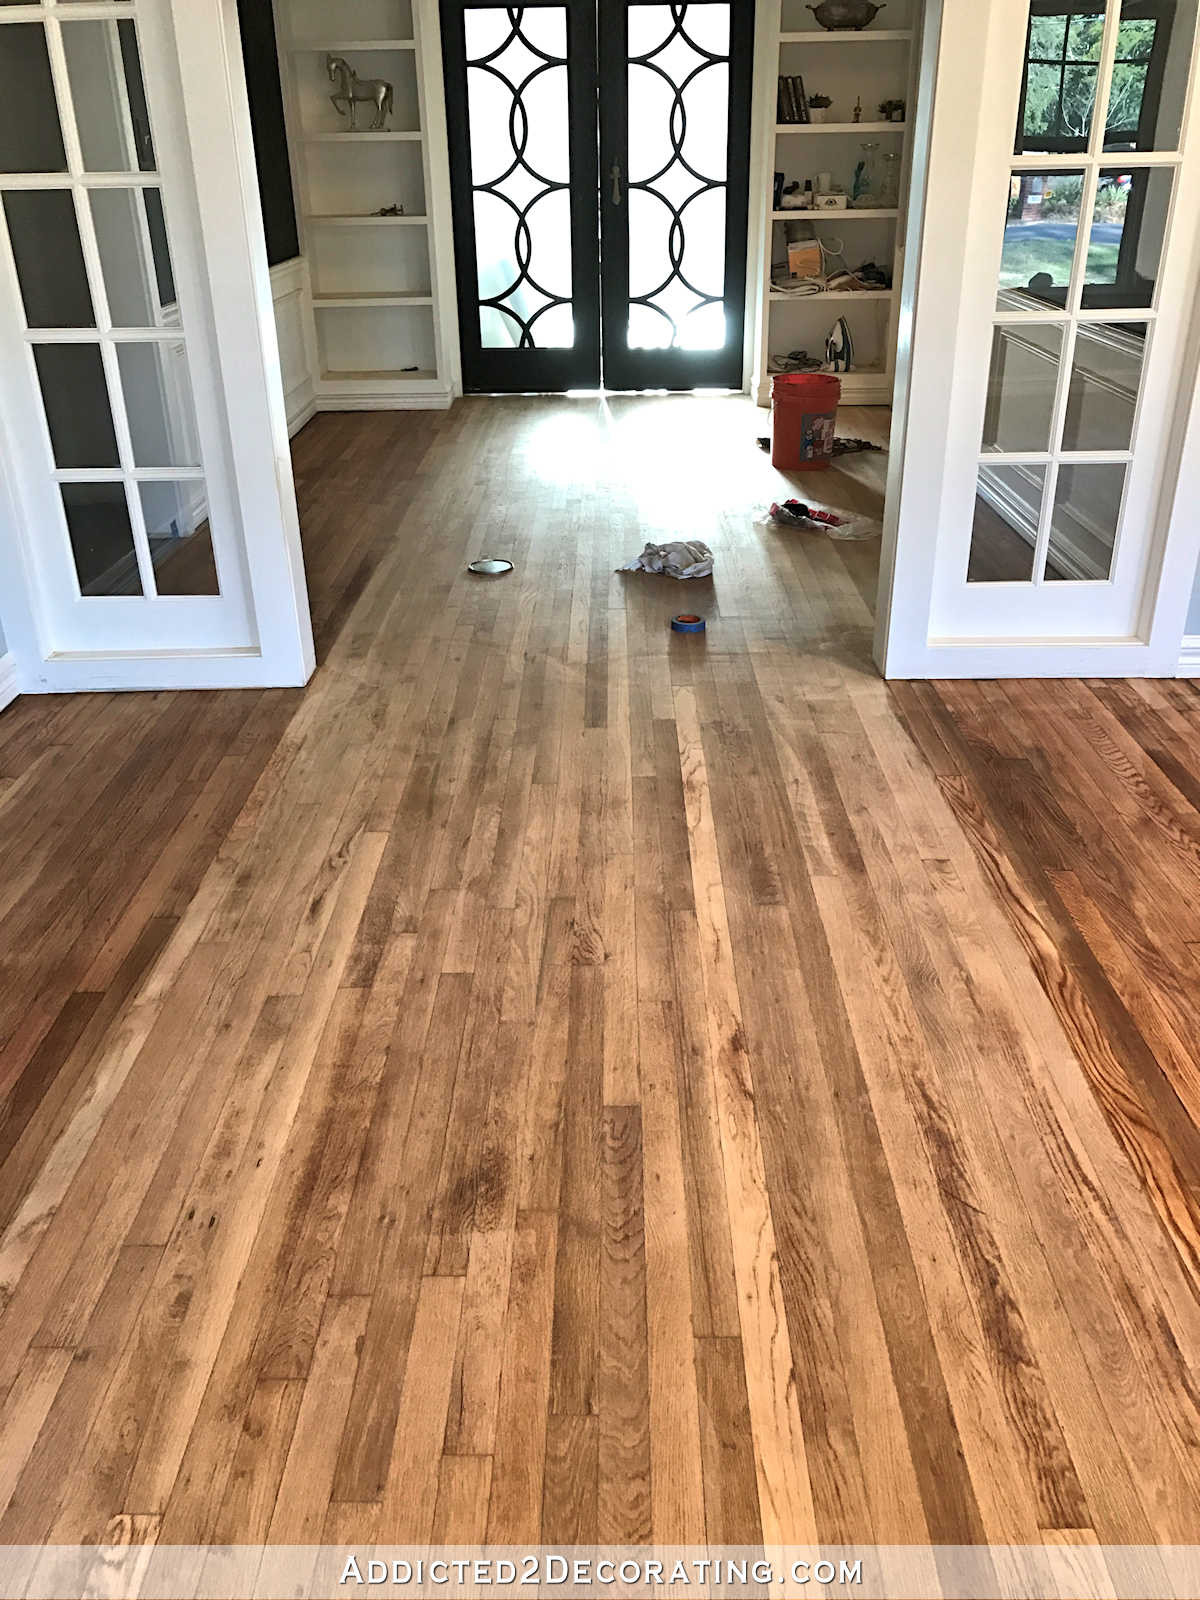 oak hardwood flooring cost per square foot of how much to refinish wood floors adventures in staining my red oak inside how much to refinish wood floors adventures in staining my red oak hardwood floors products